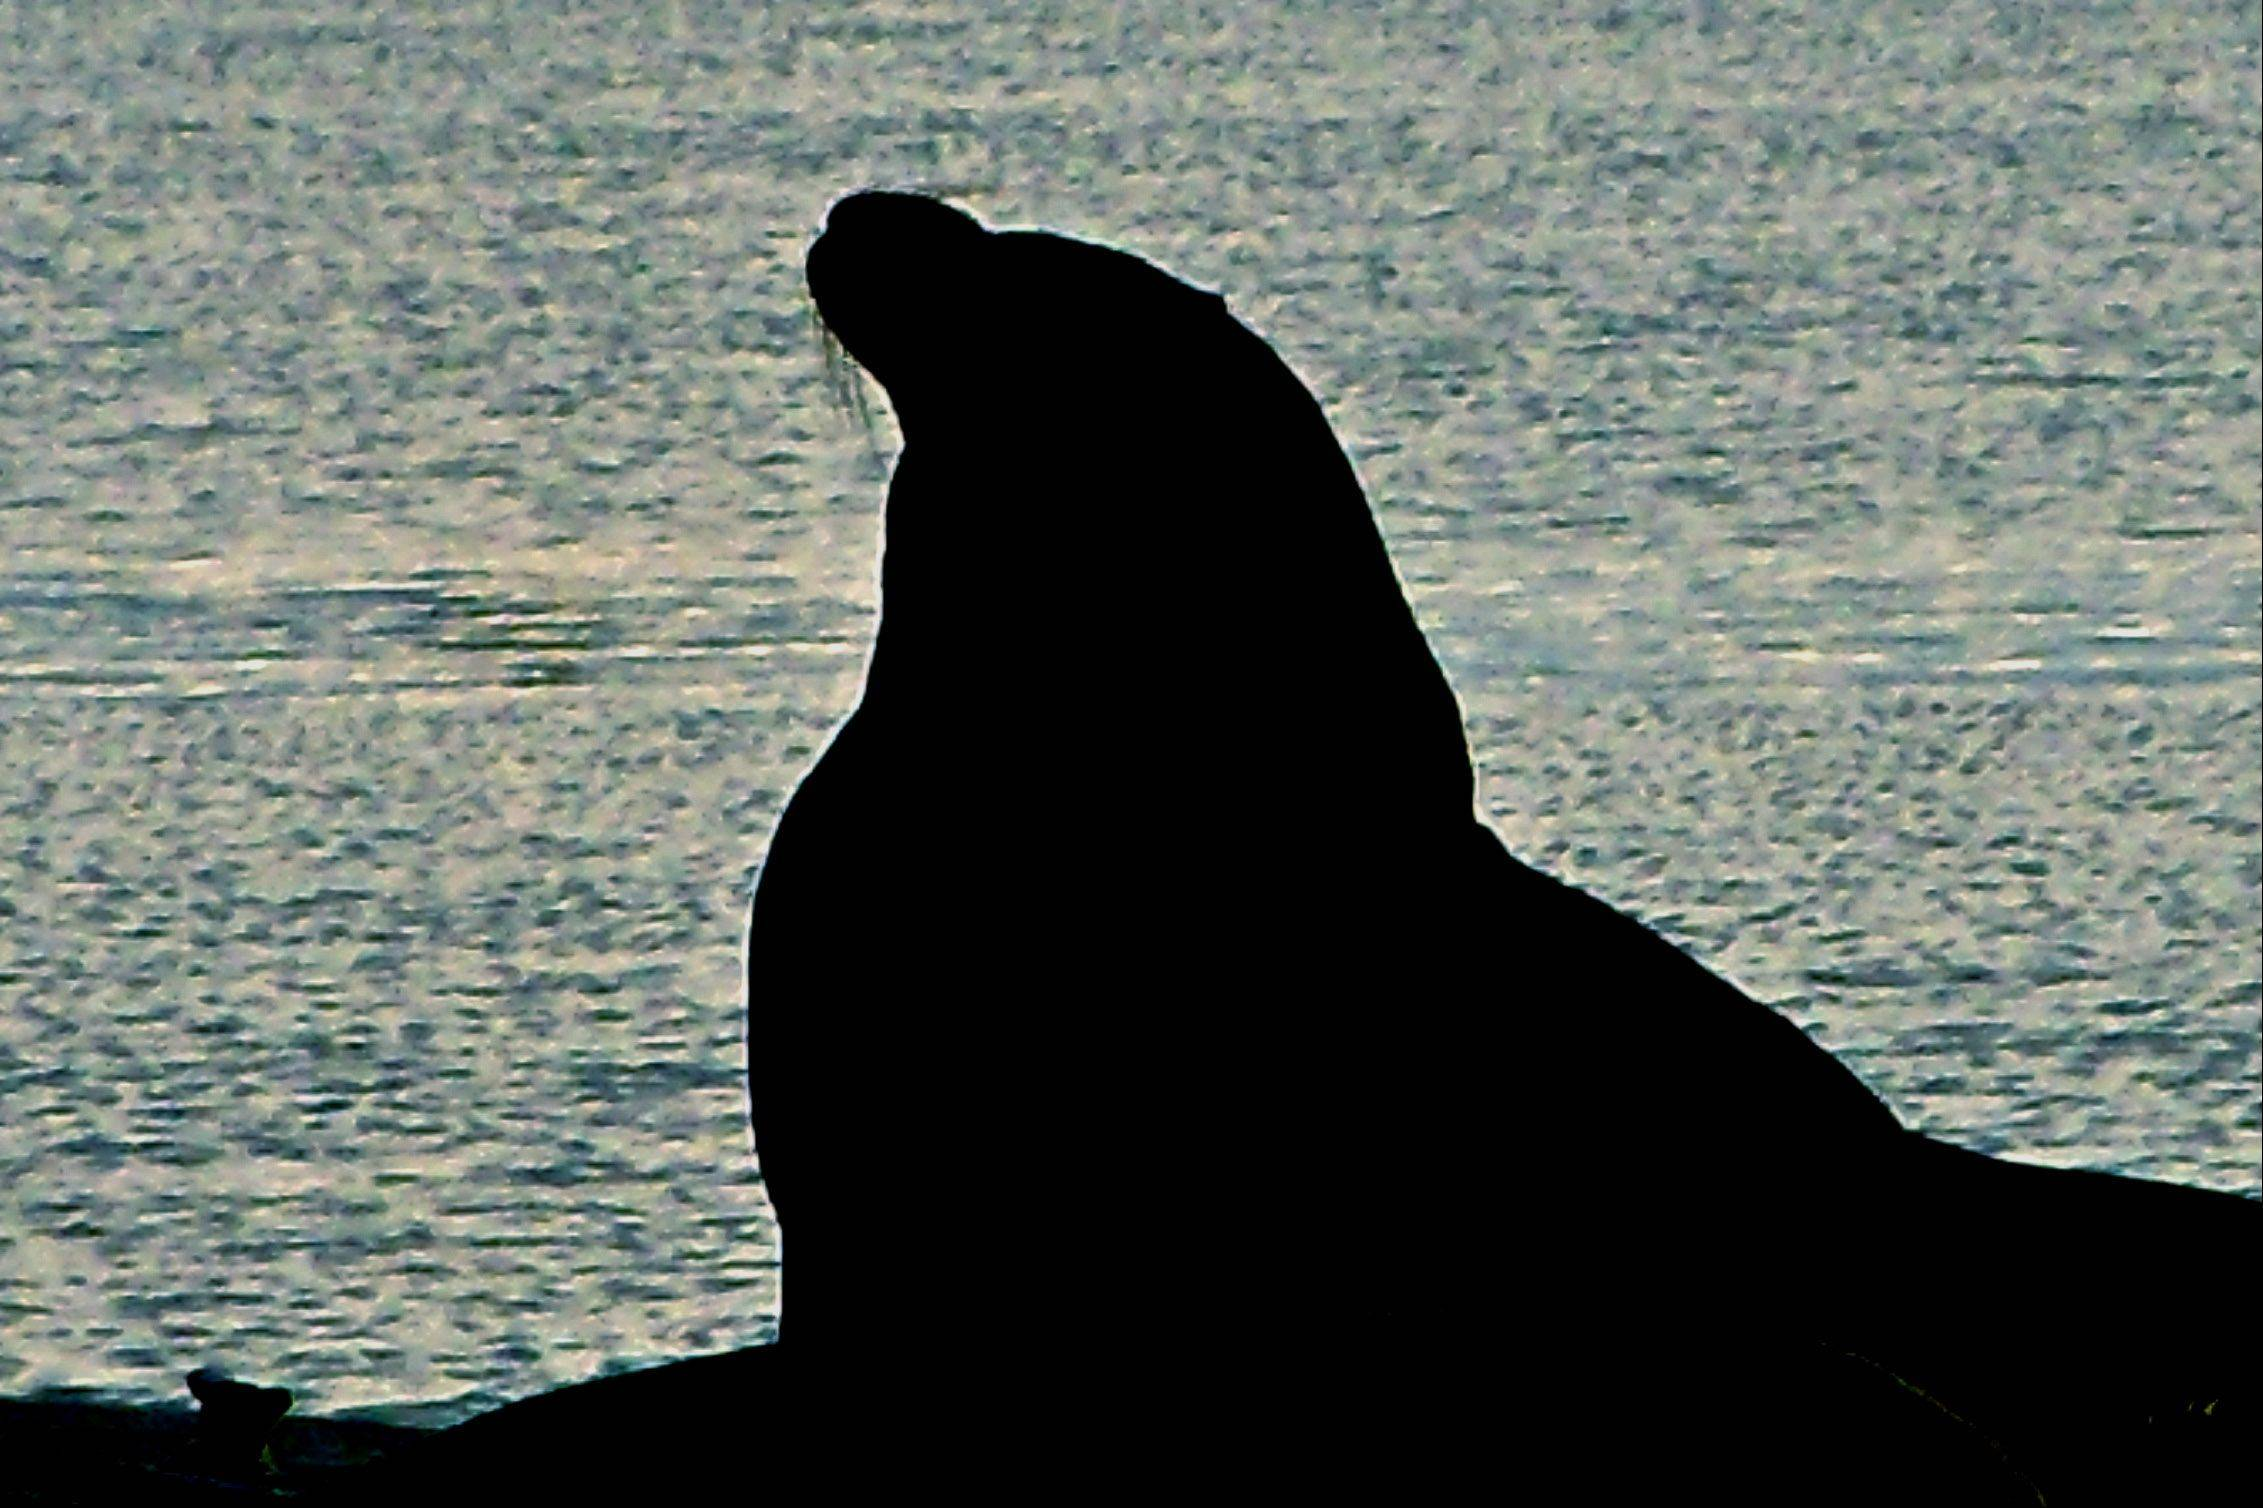 I took this picture at the Crescent City CA. harbor. The sun was just going down and this sea lion was sitting on a dock as if watching the sunset.